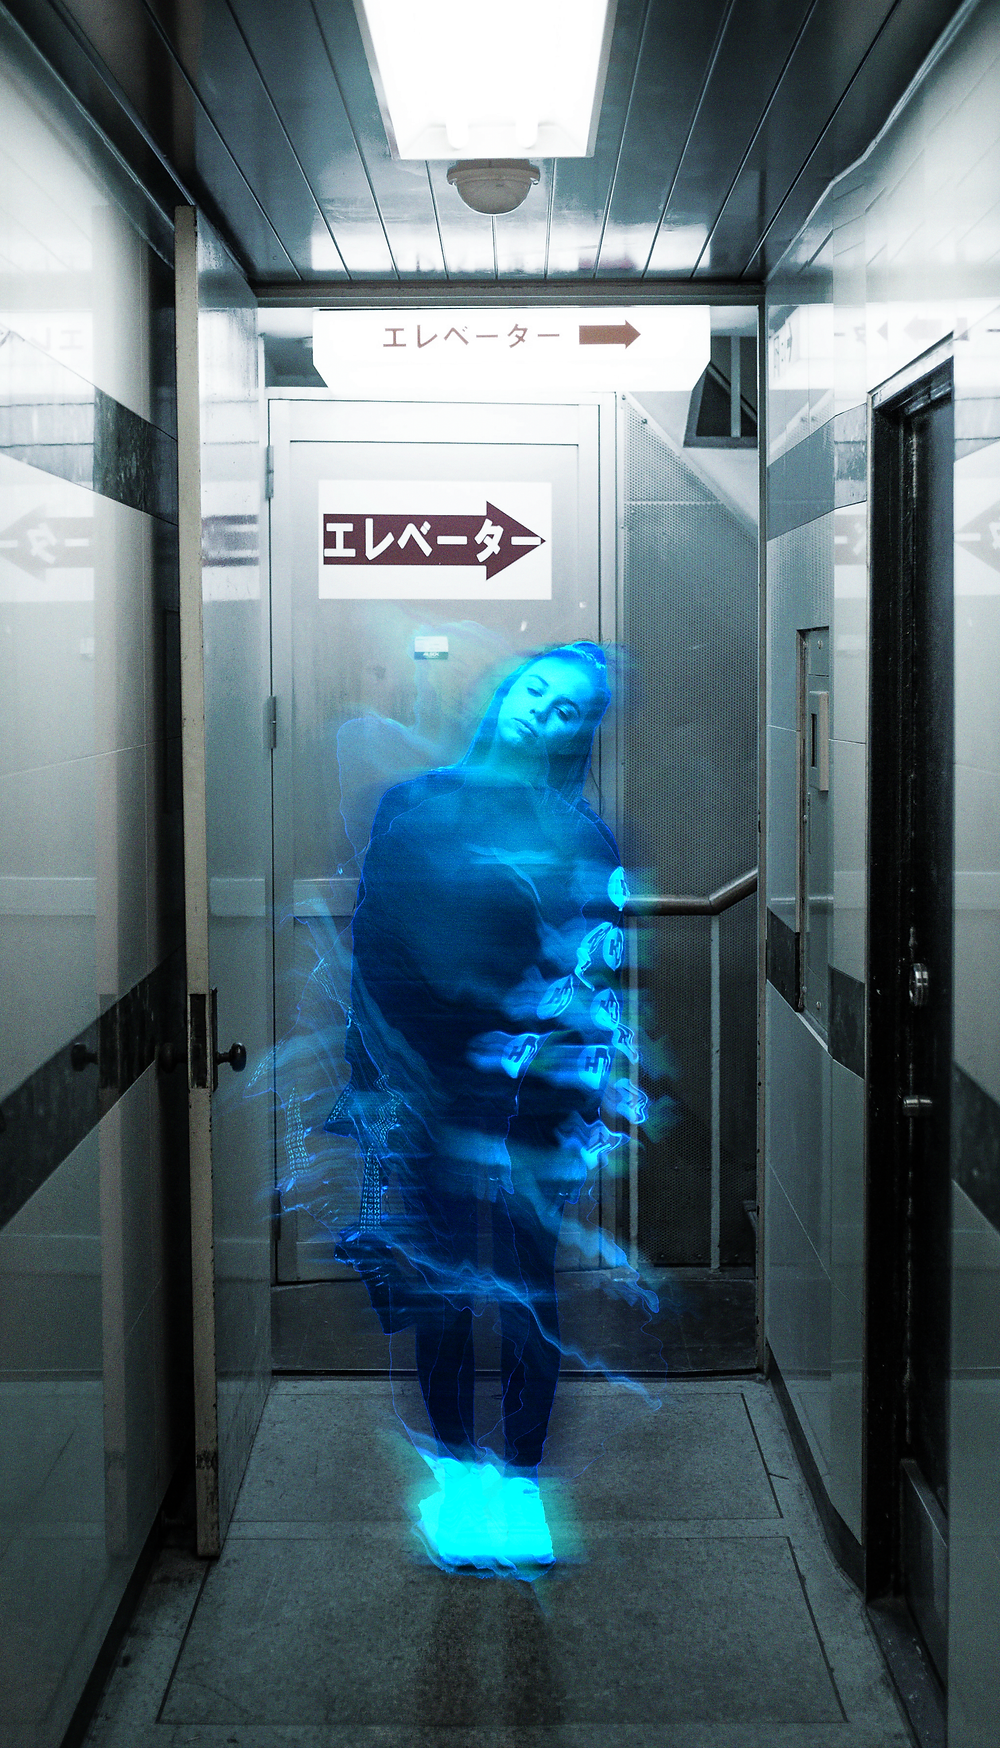 A girl appears as a blue ghost in a desaturated hallway